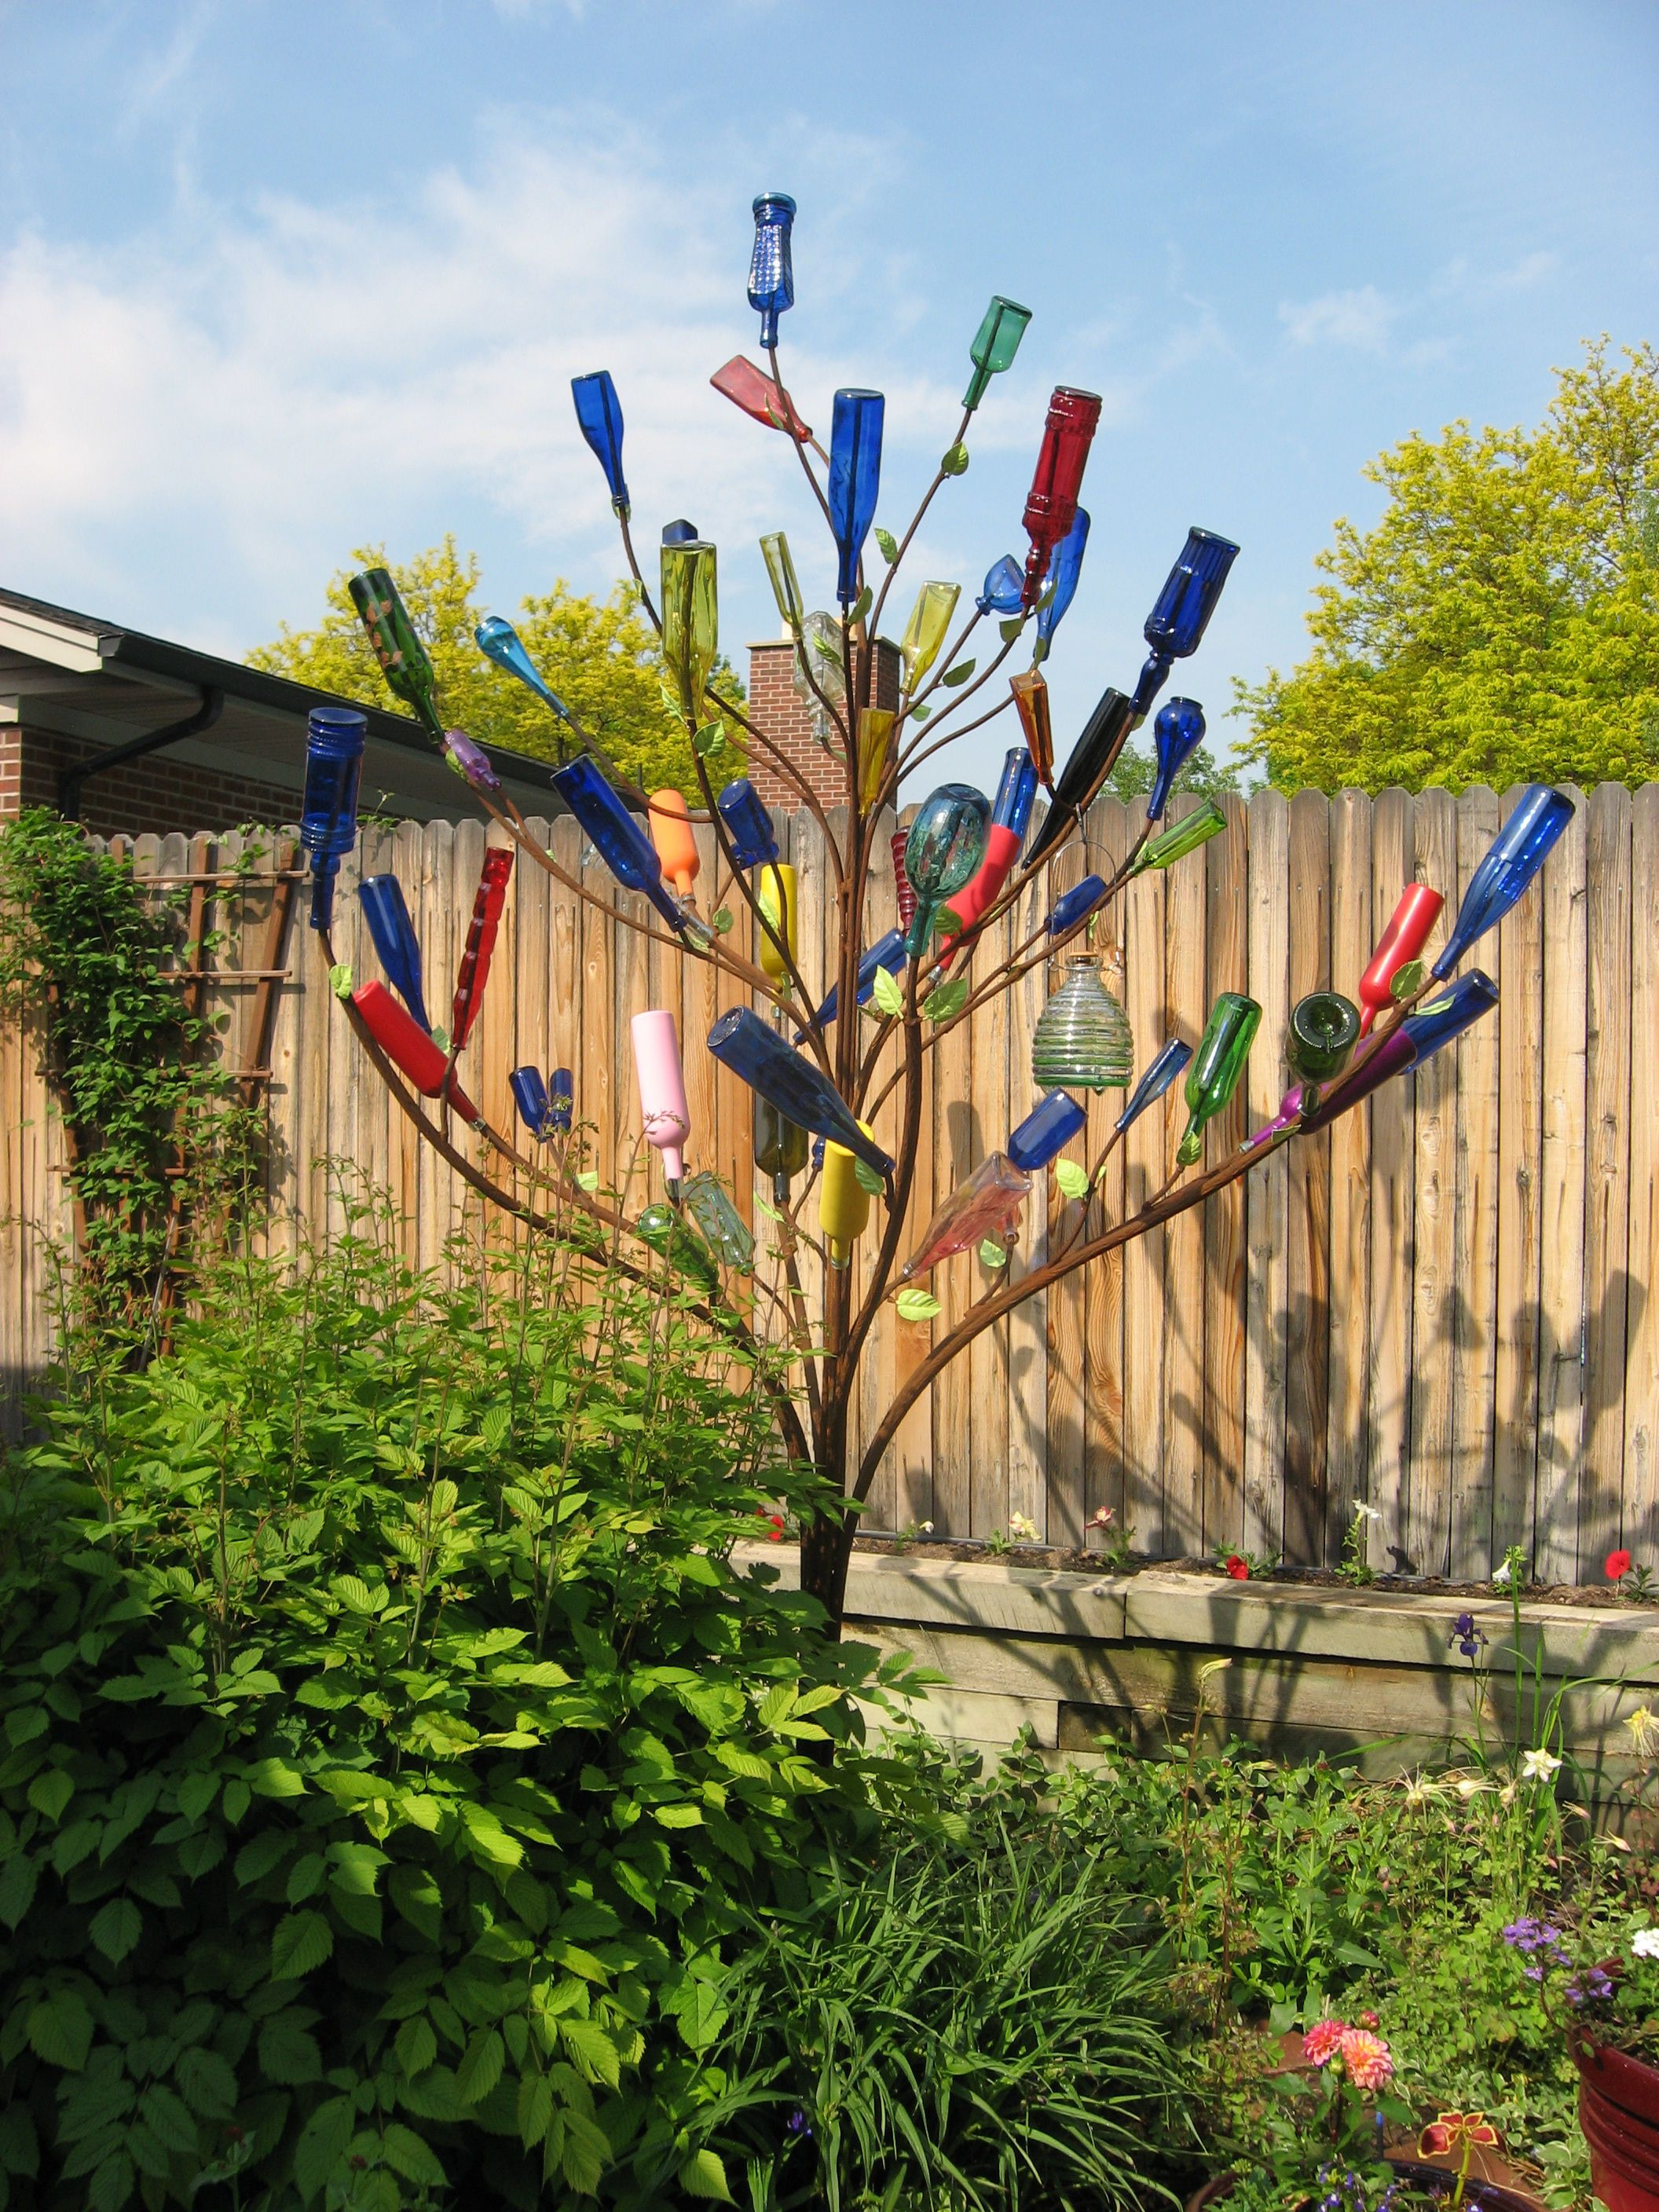 The history of bottle trees is pretty interesting